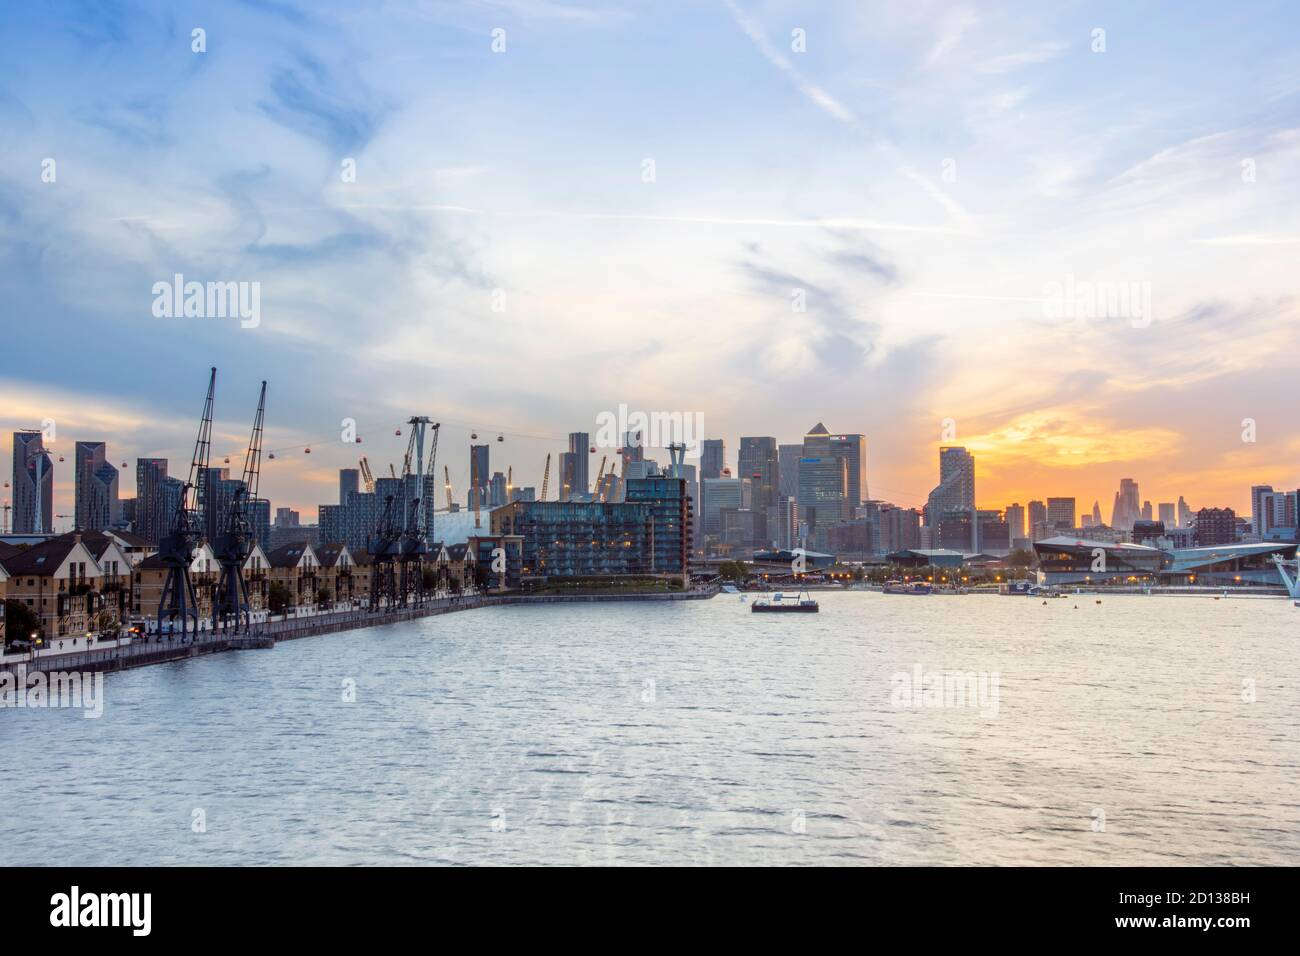 UK, London, Docklands. Central Business District from East London, showing Royal Victoria Docks, O2 Millennium Dome & the Emirates Cable Car Stock Photo